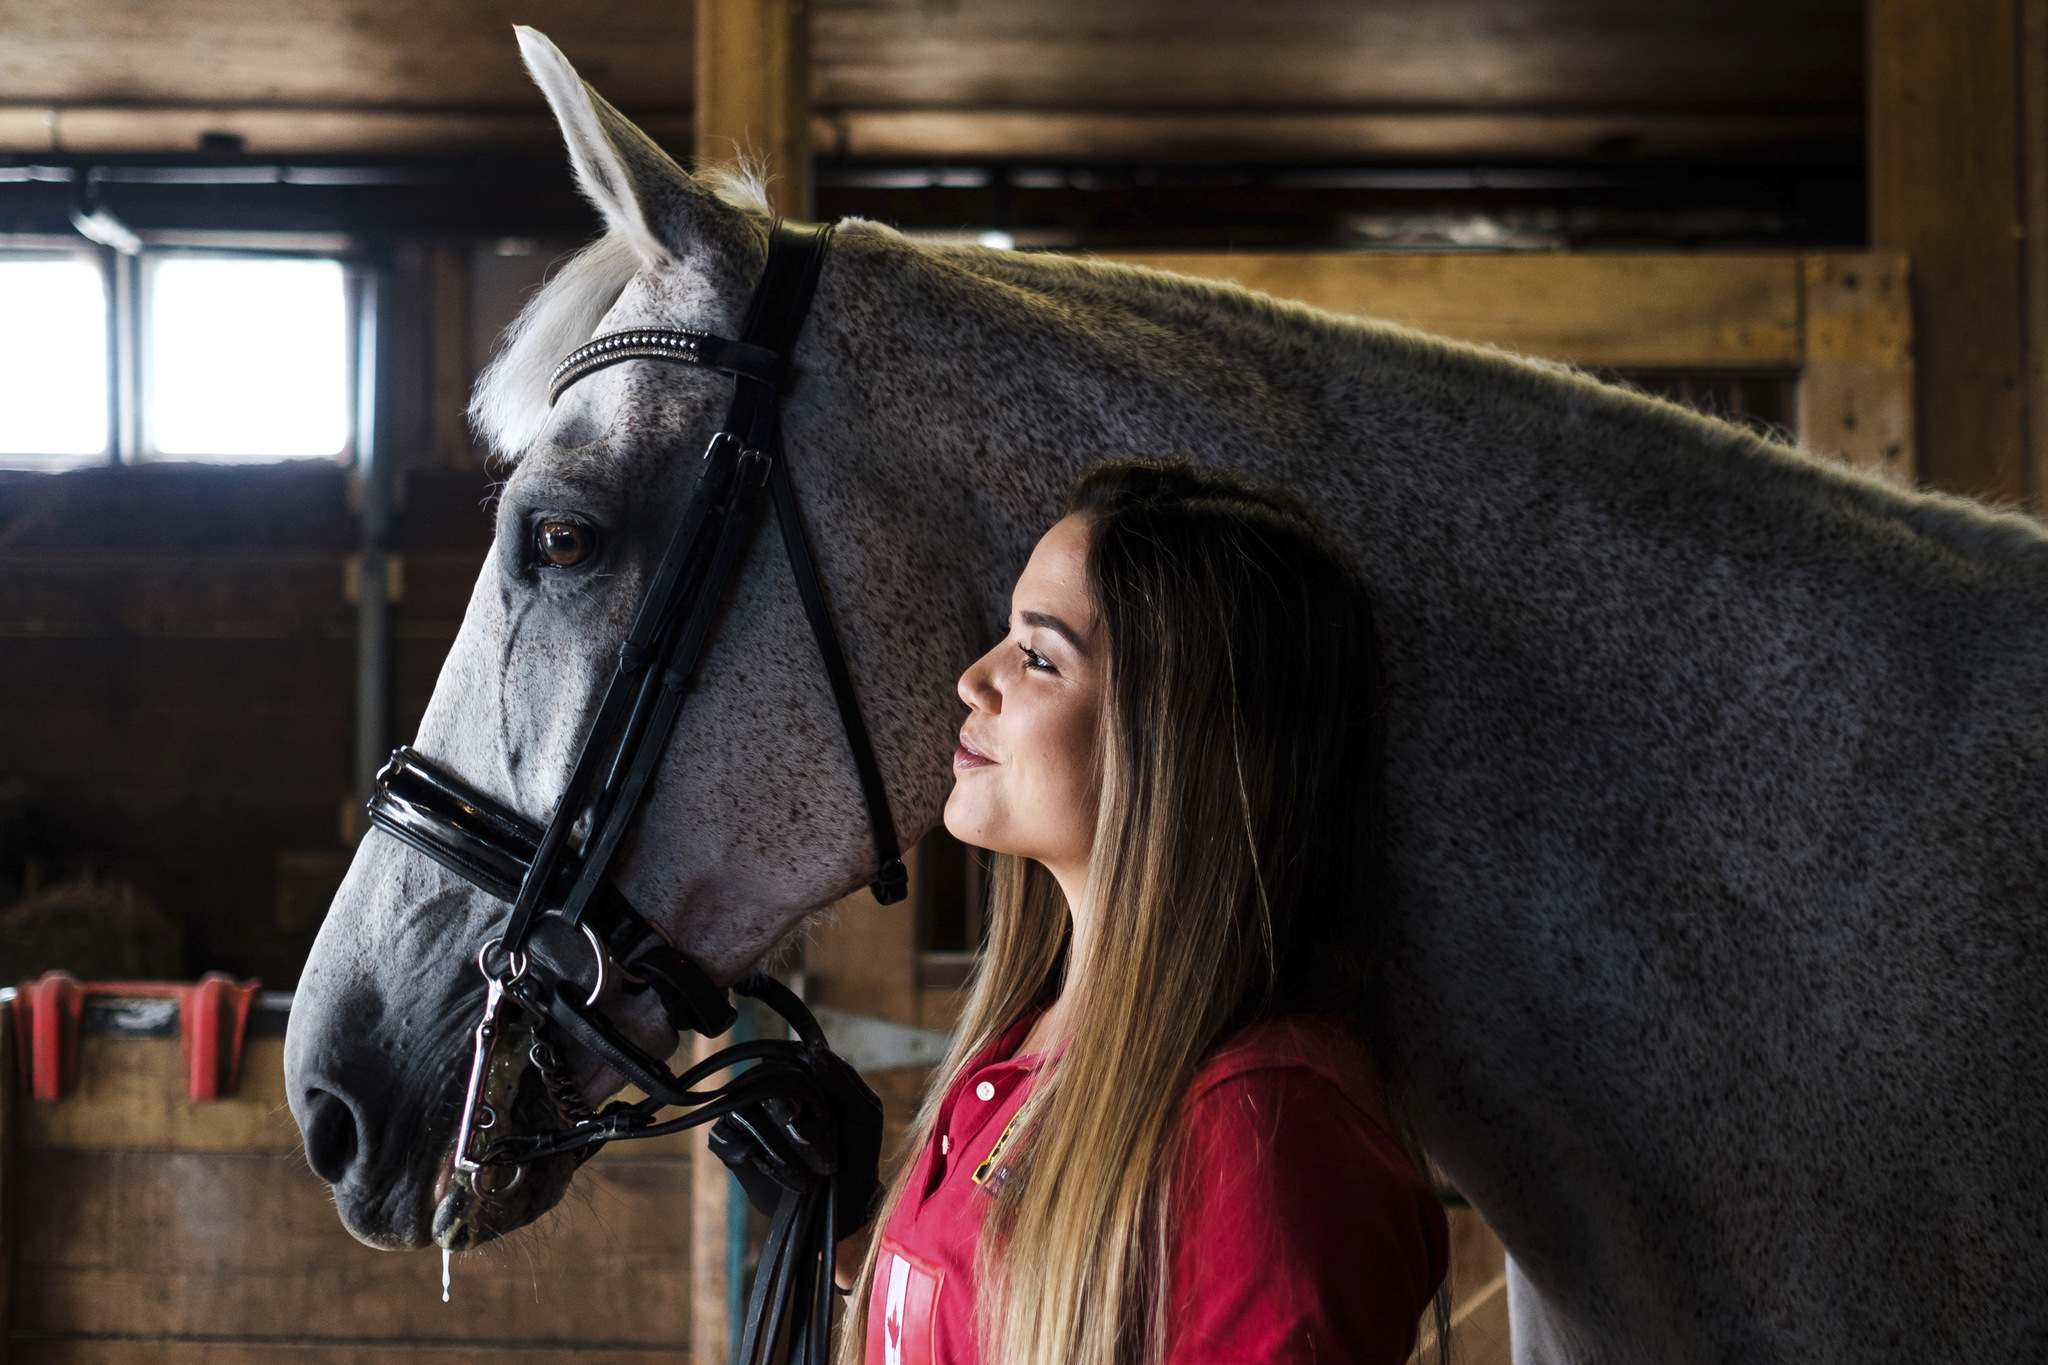 Chia gained some of her greatest successes aboard Teo, a Dutch Warmblood, competing at the Grand Prix level.